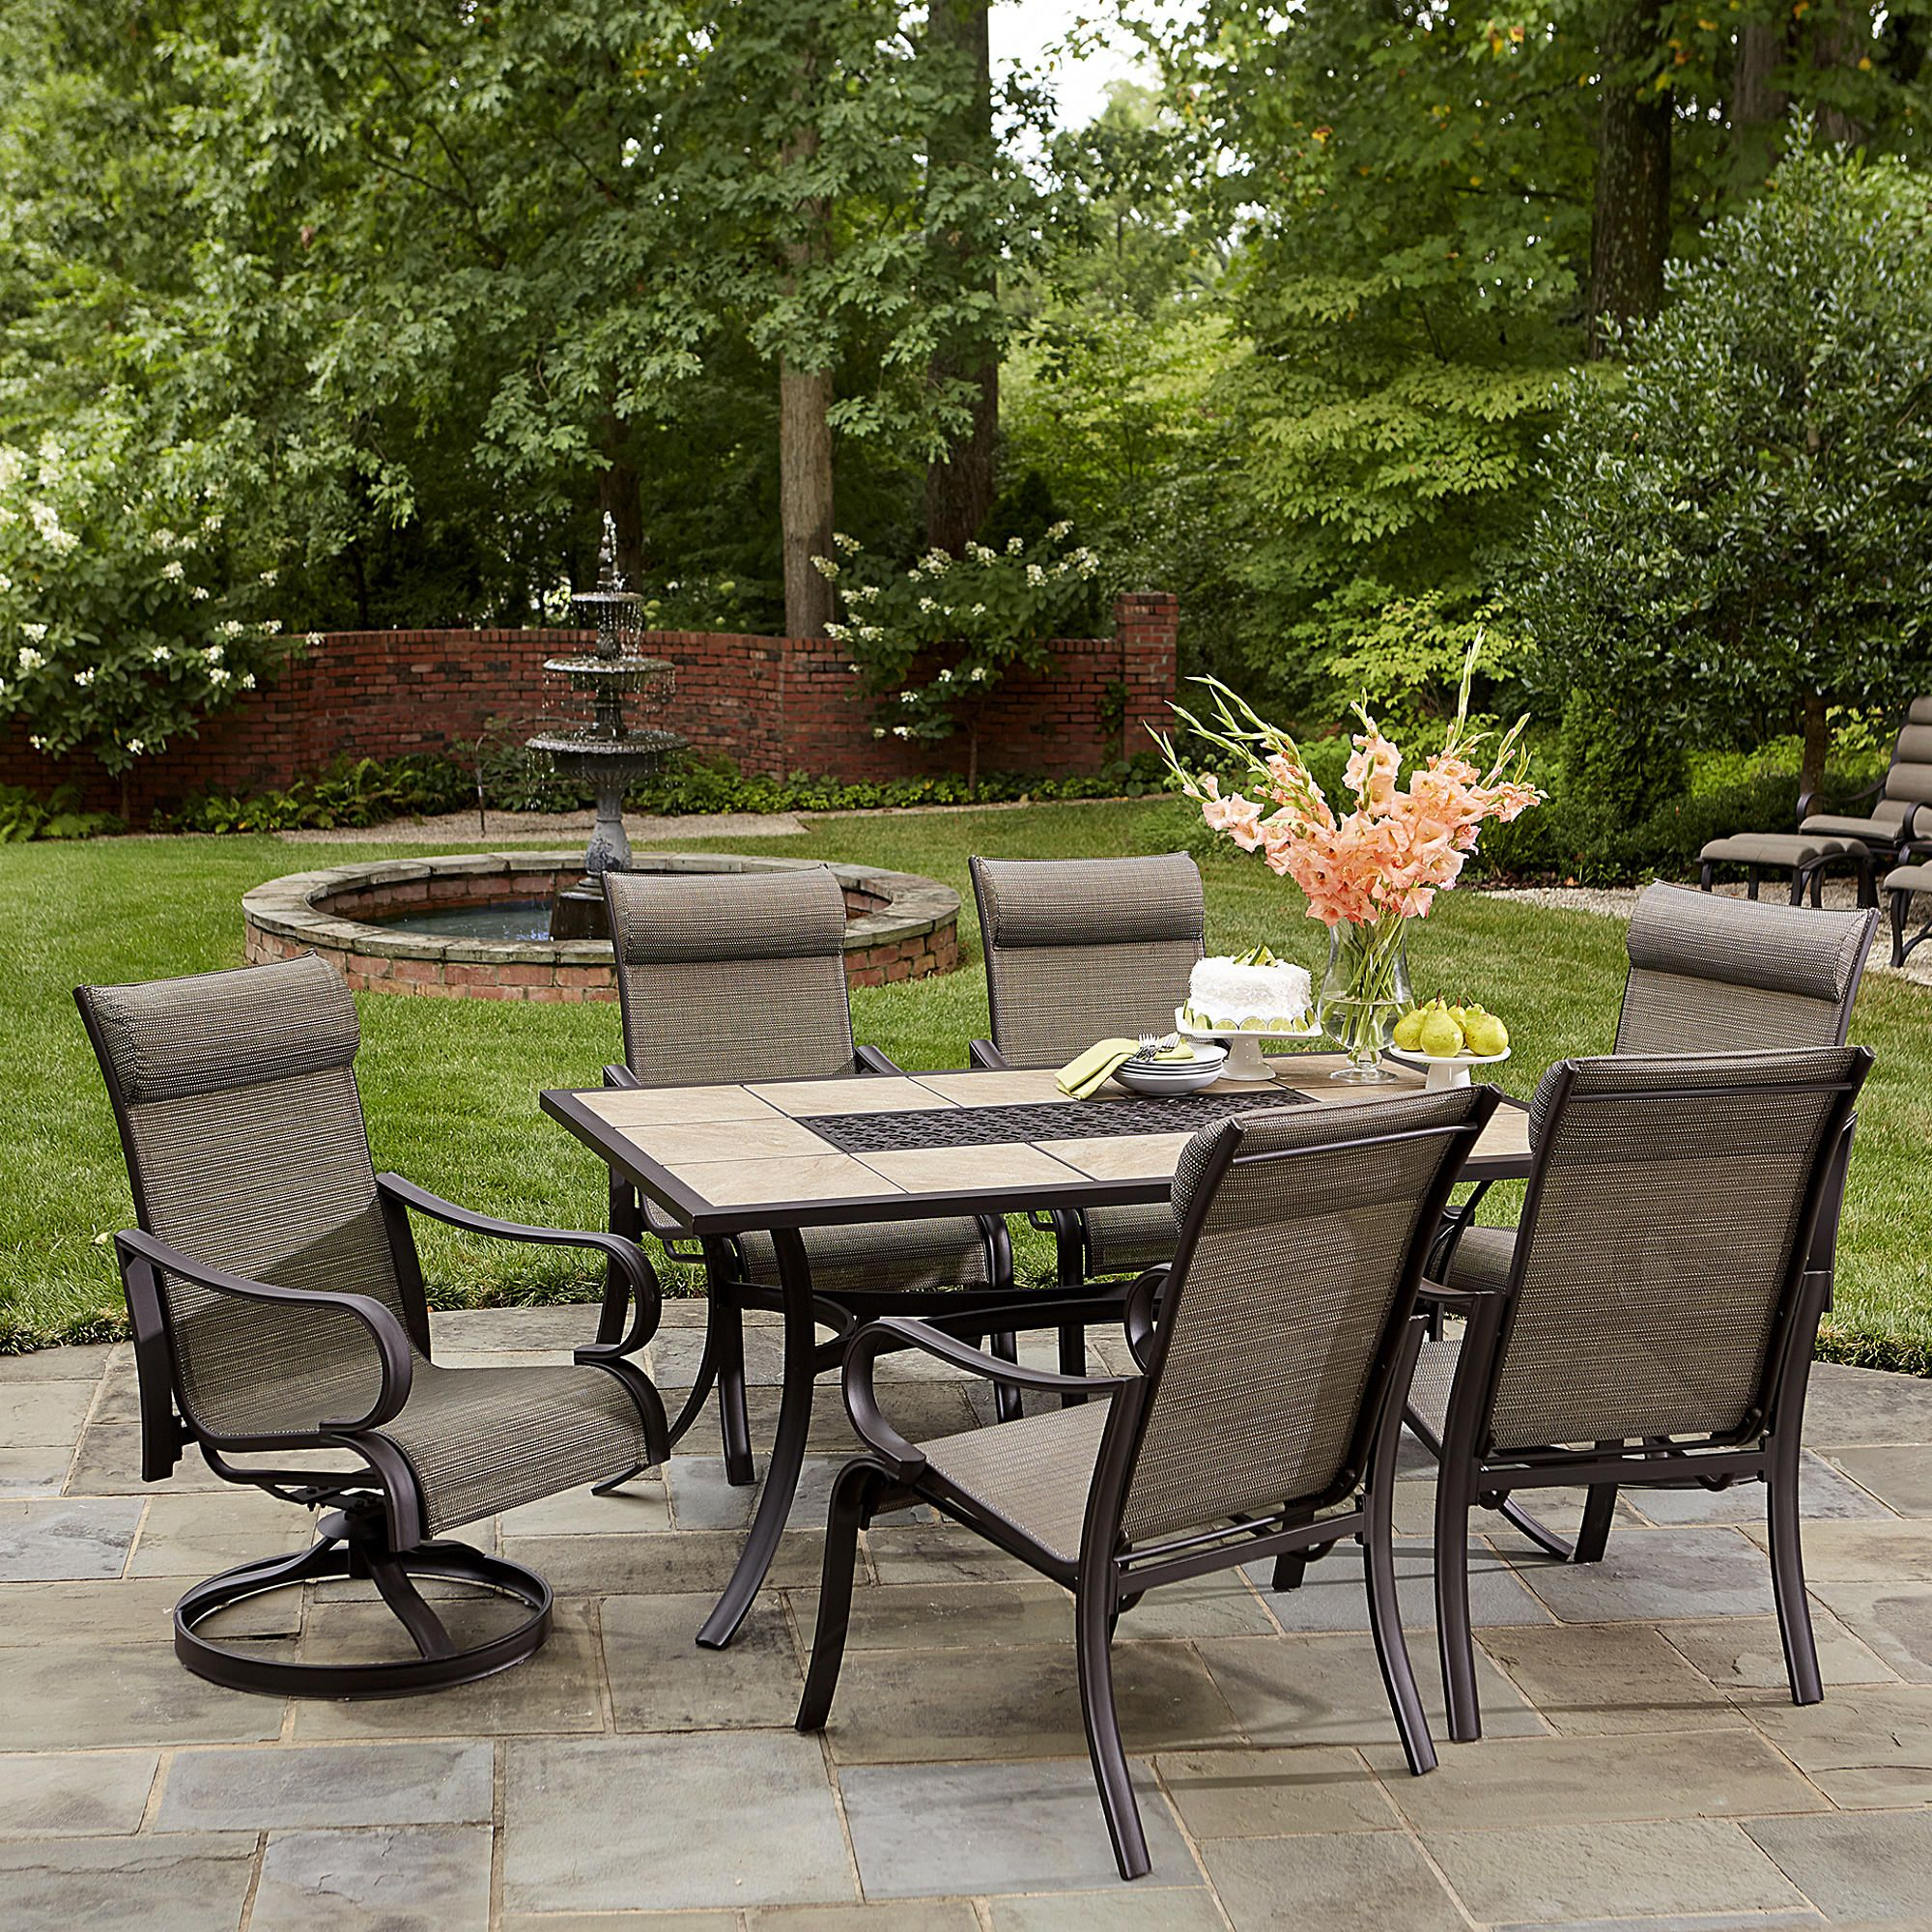 Kmart Com Kmart Patio Furniture Patio Furniture For Sale